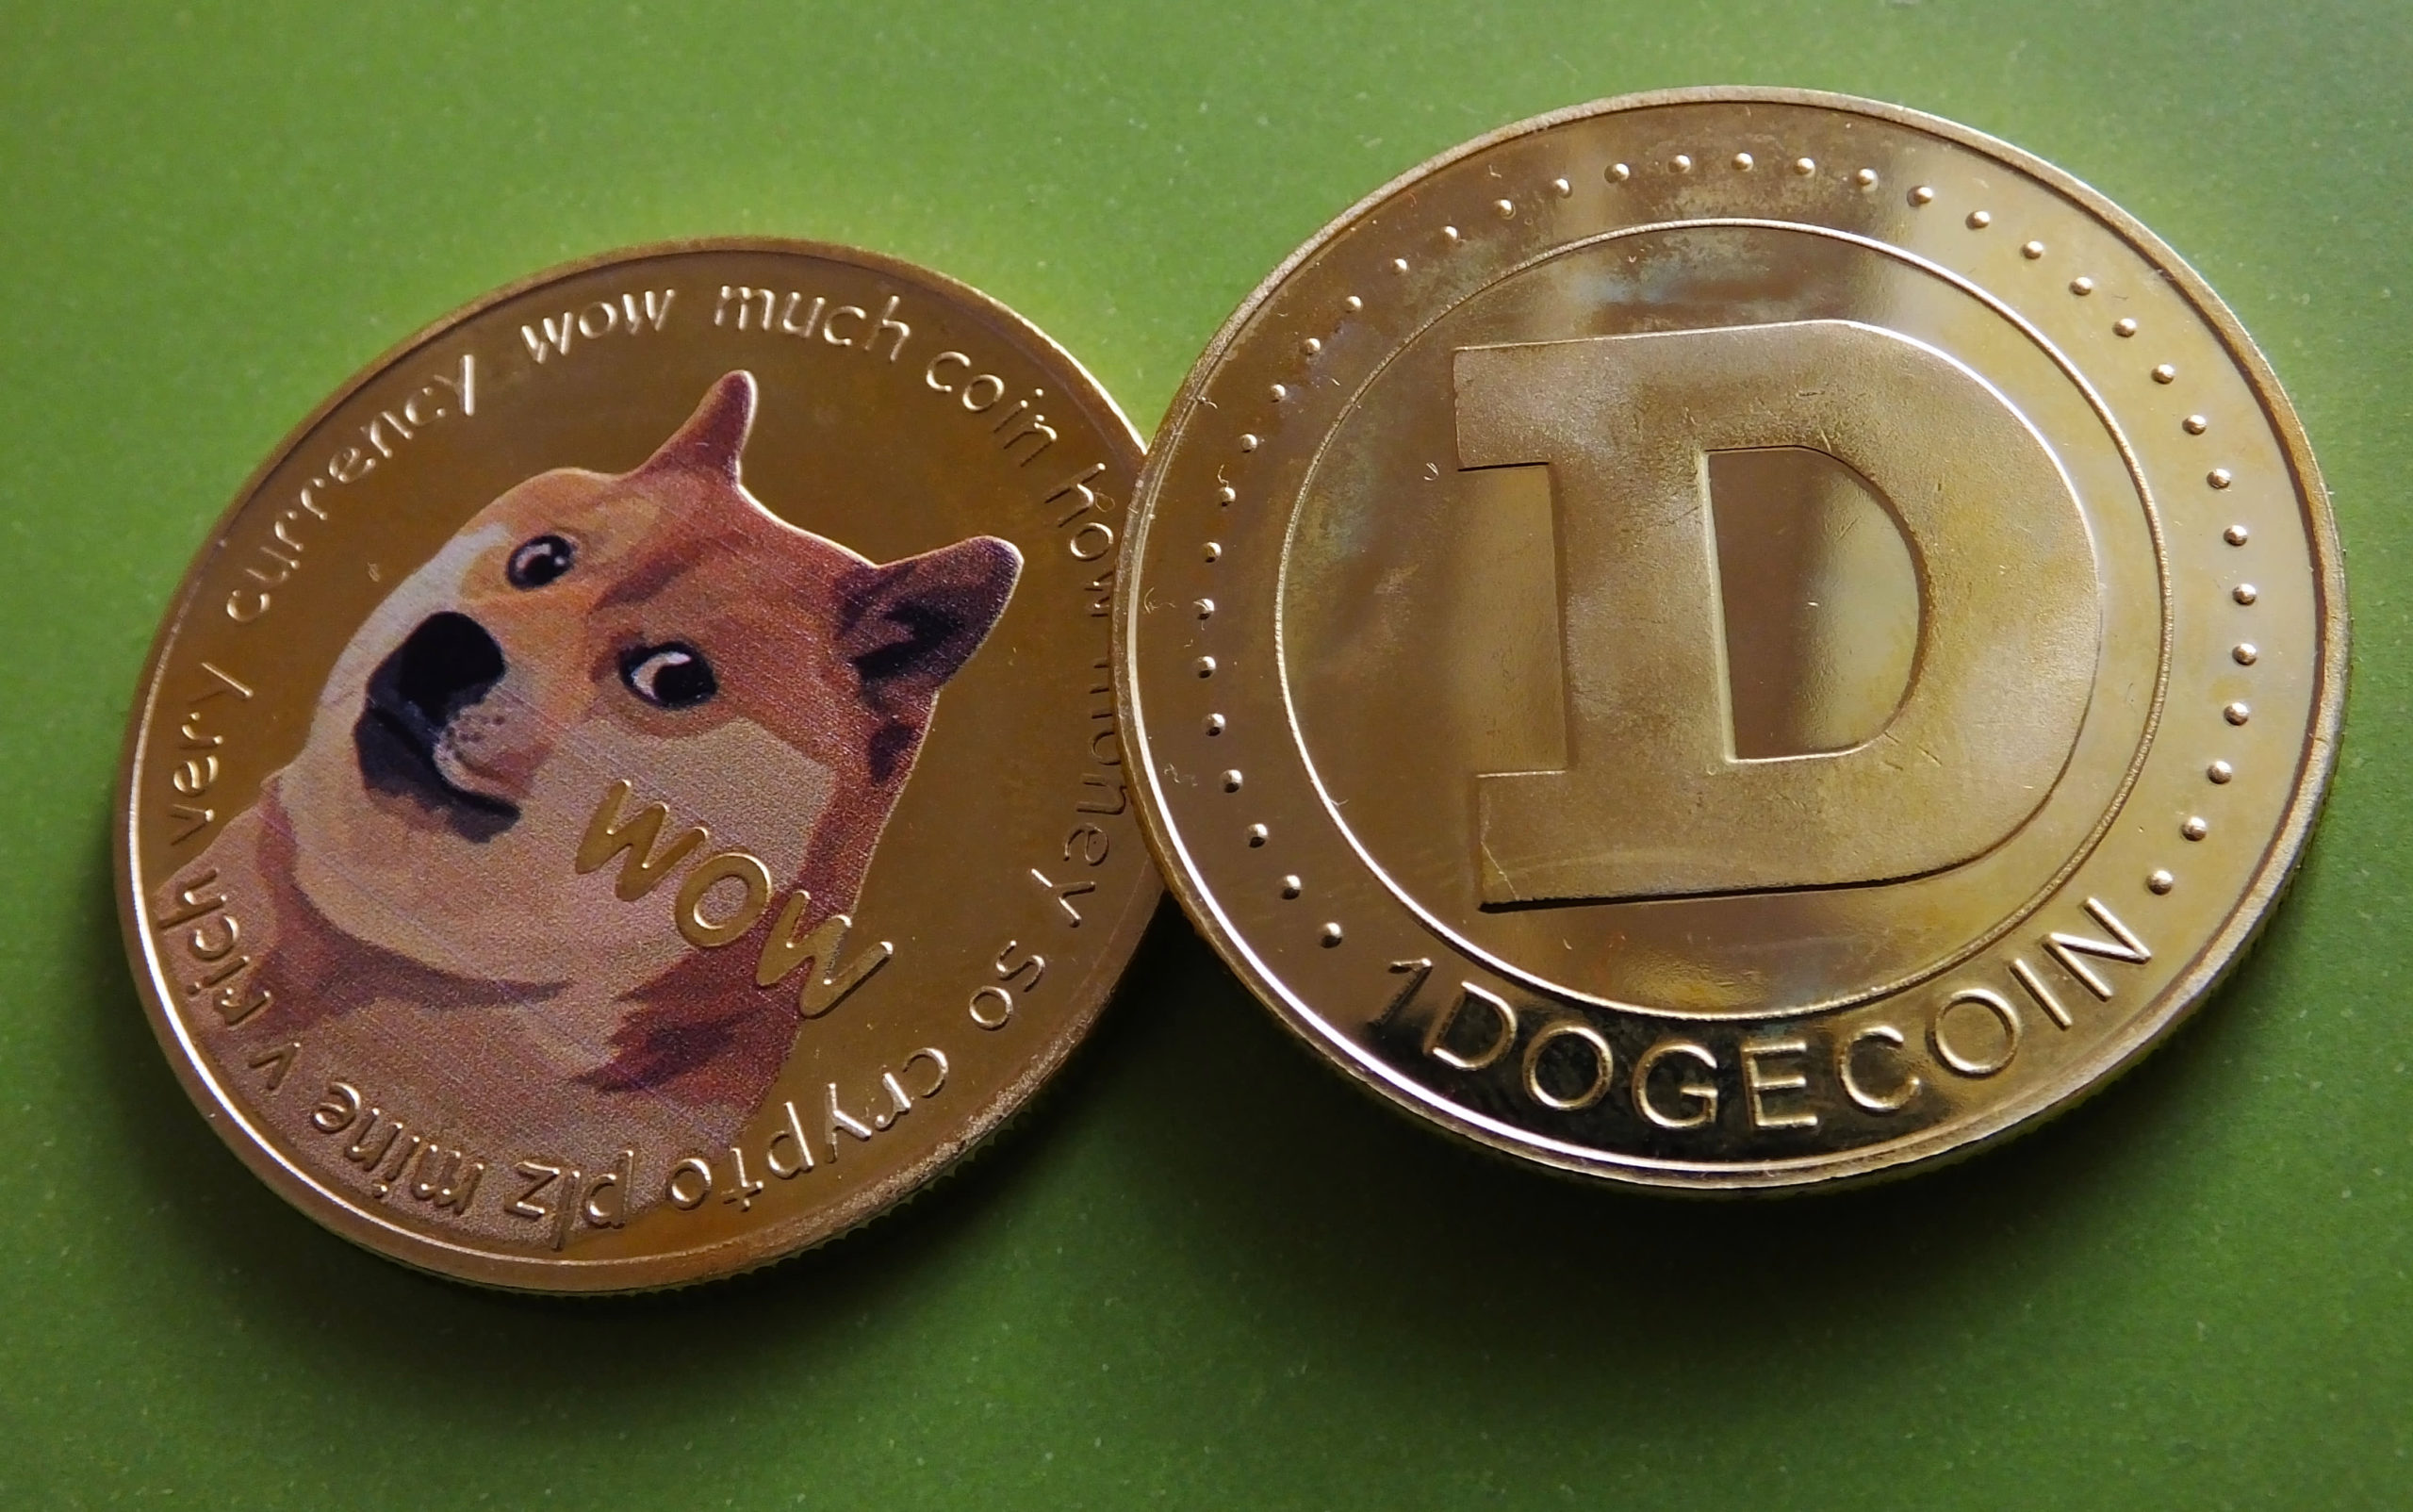 Dogecoin Price Prediction 5 June 2021? Why Dogecoin Pump Up?